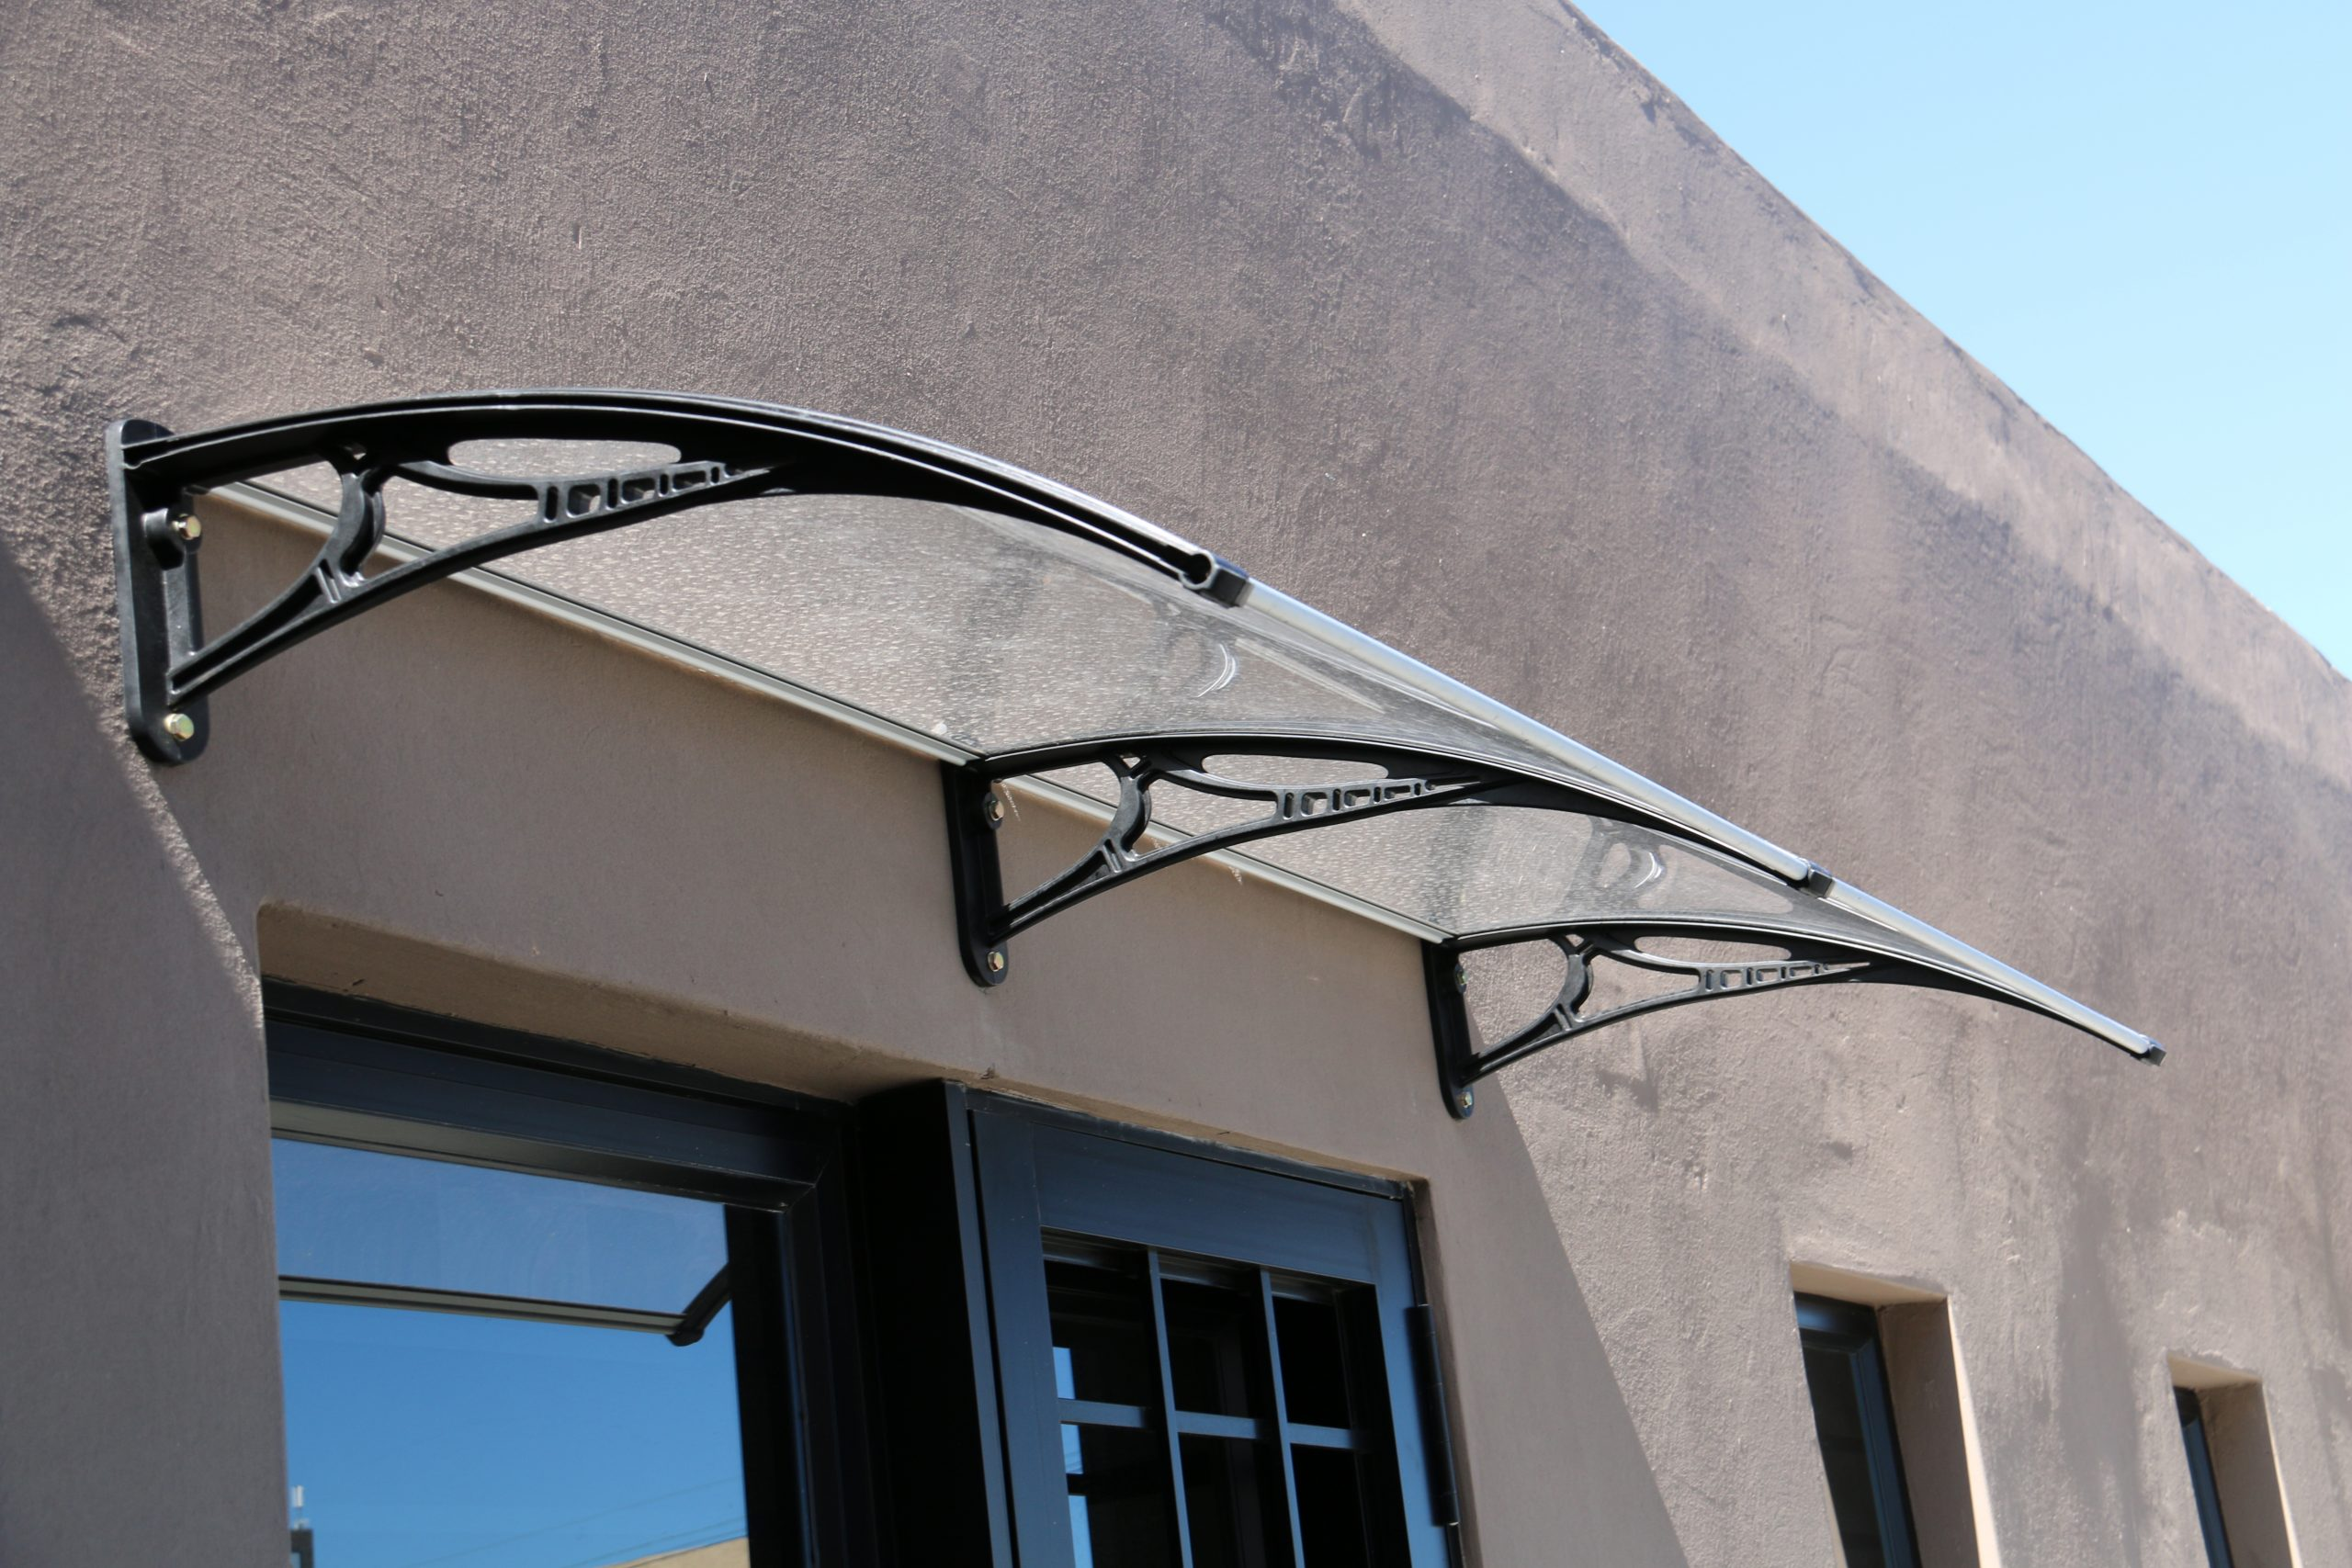 Acrylic awning protecting windows